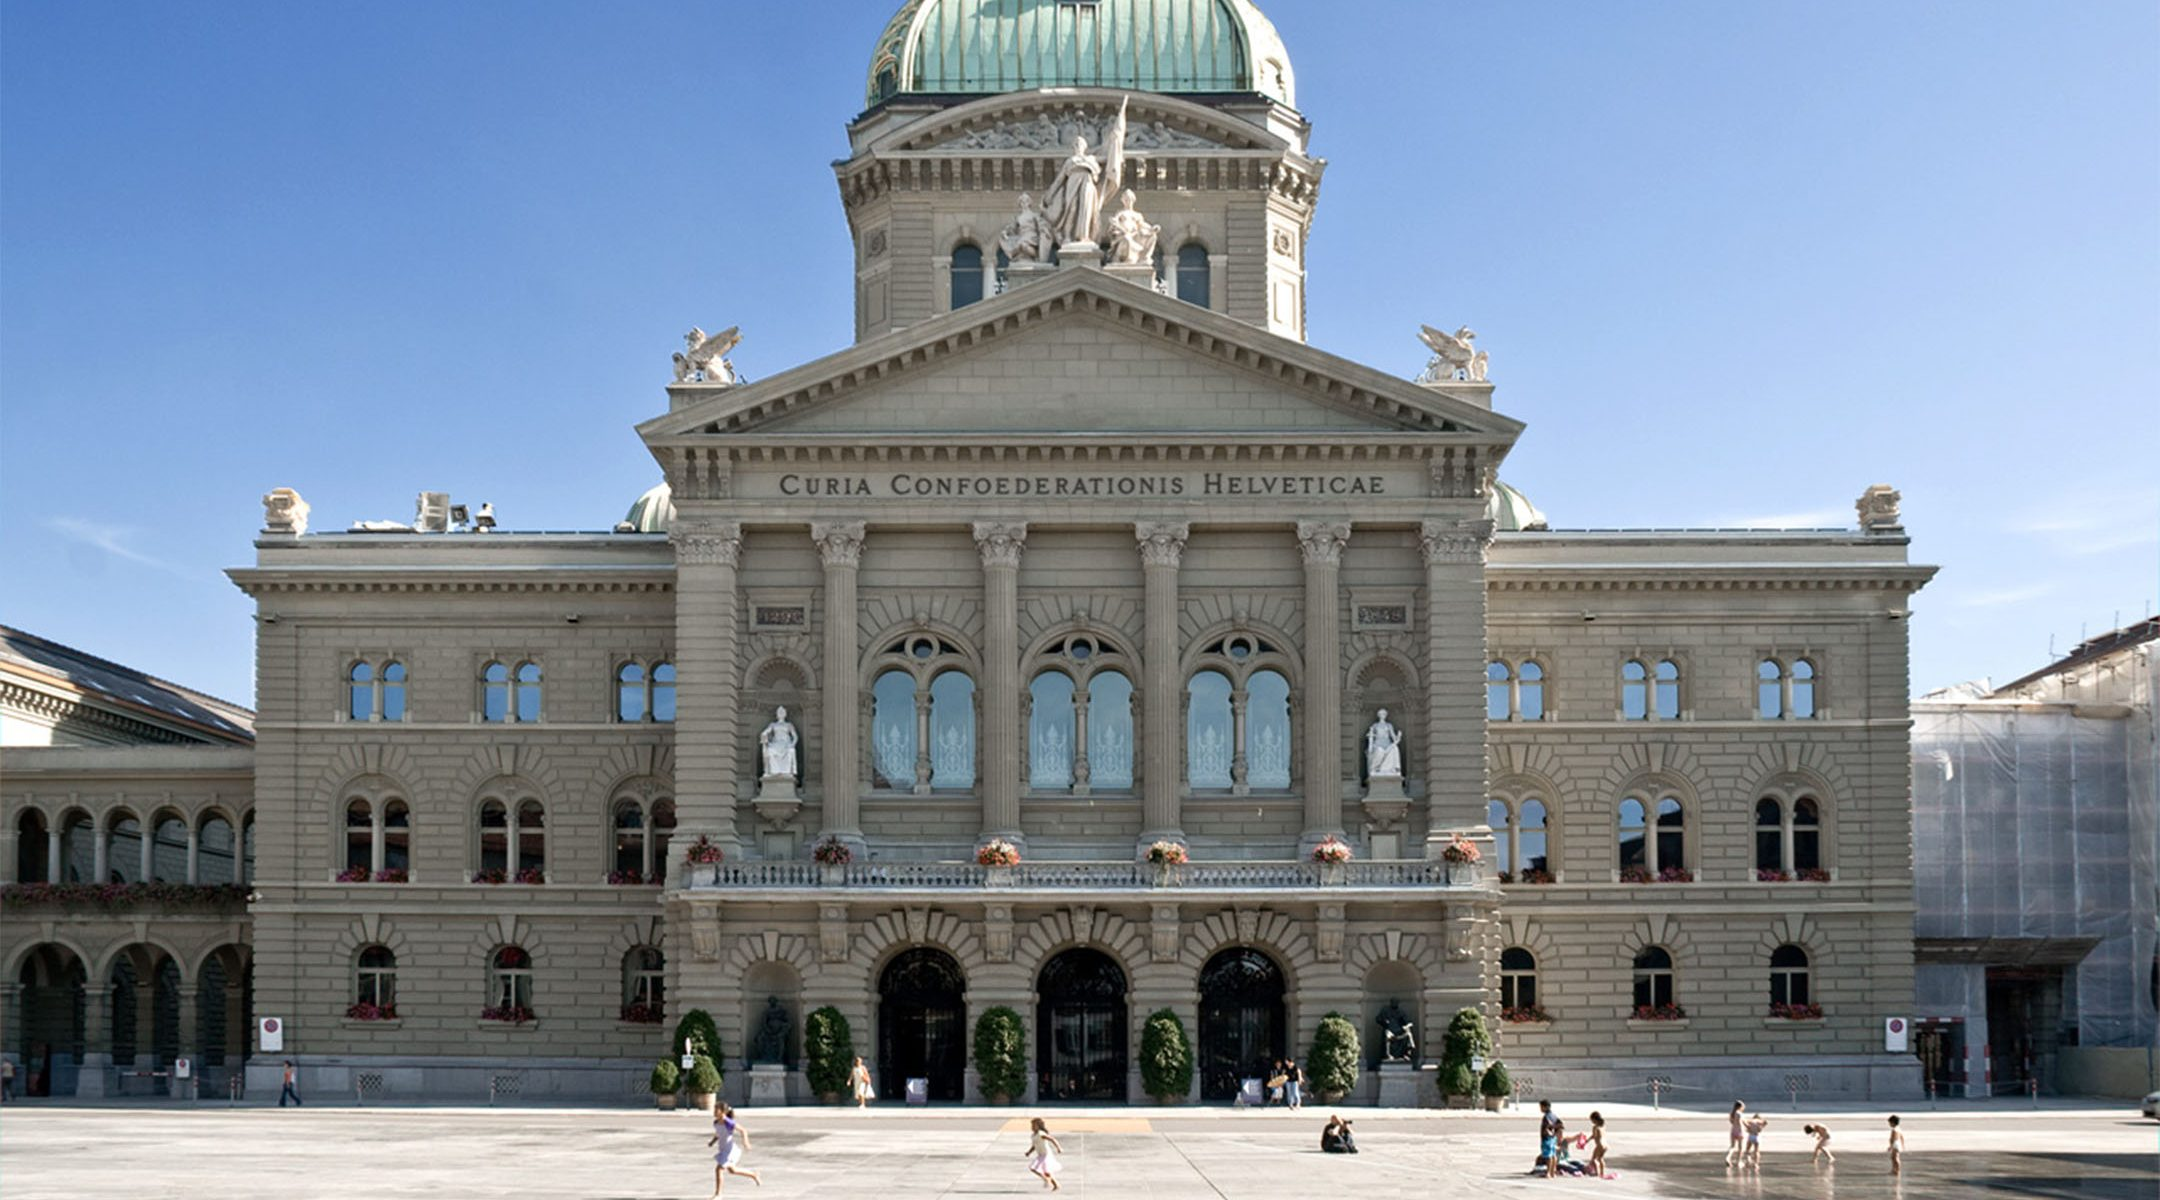 Children play outside the Federal Palace in Bern, Switzerland on July 21, 2009. (Wikimedia Commons)